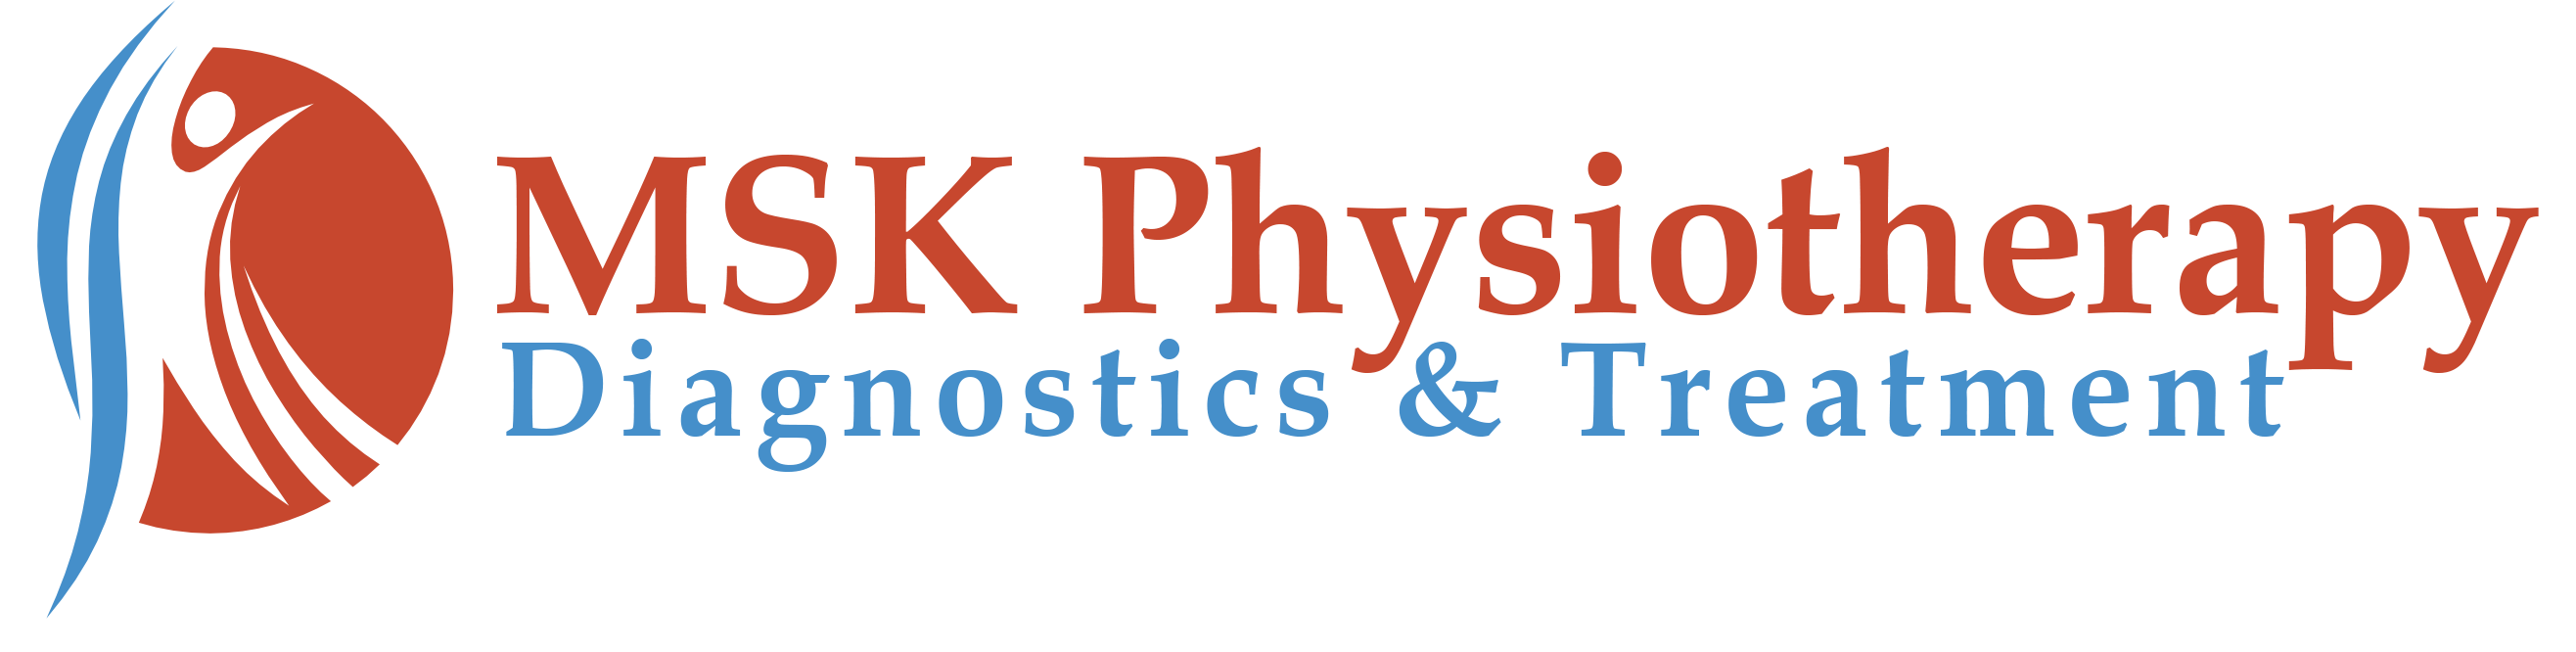 MSK Physiotherapy